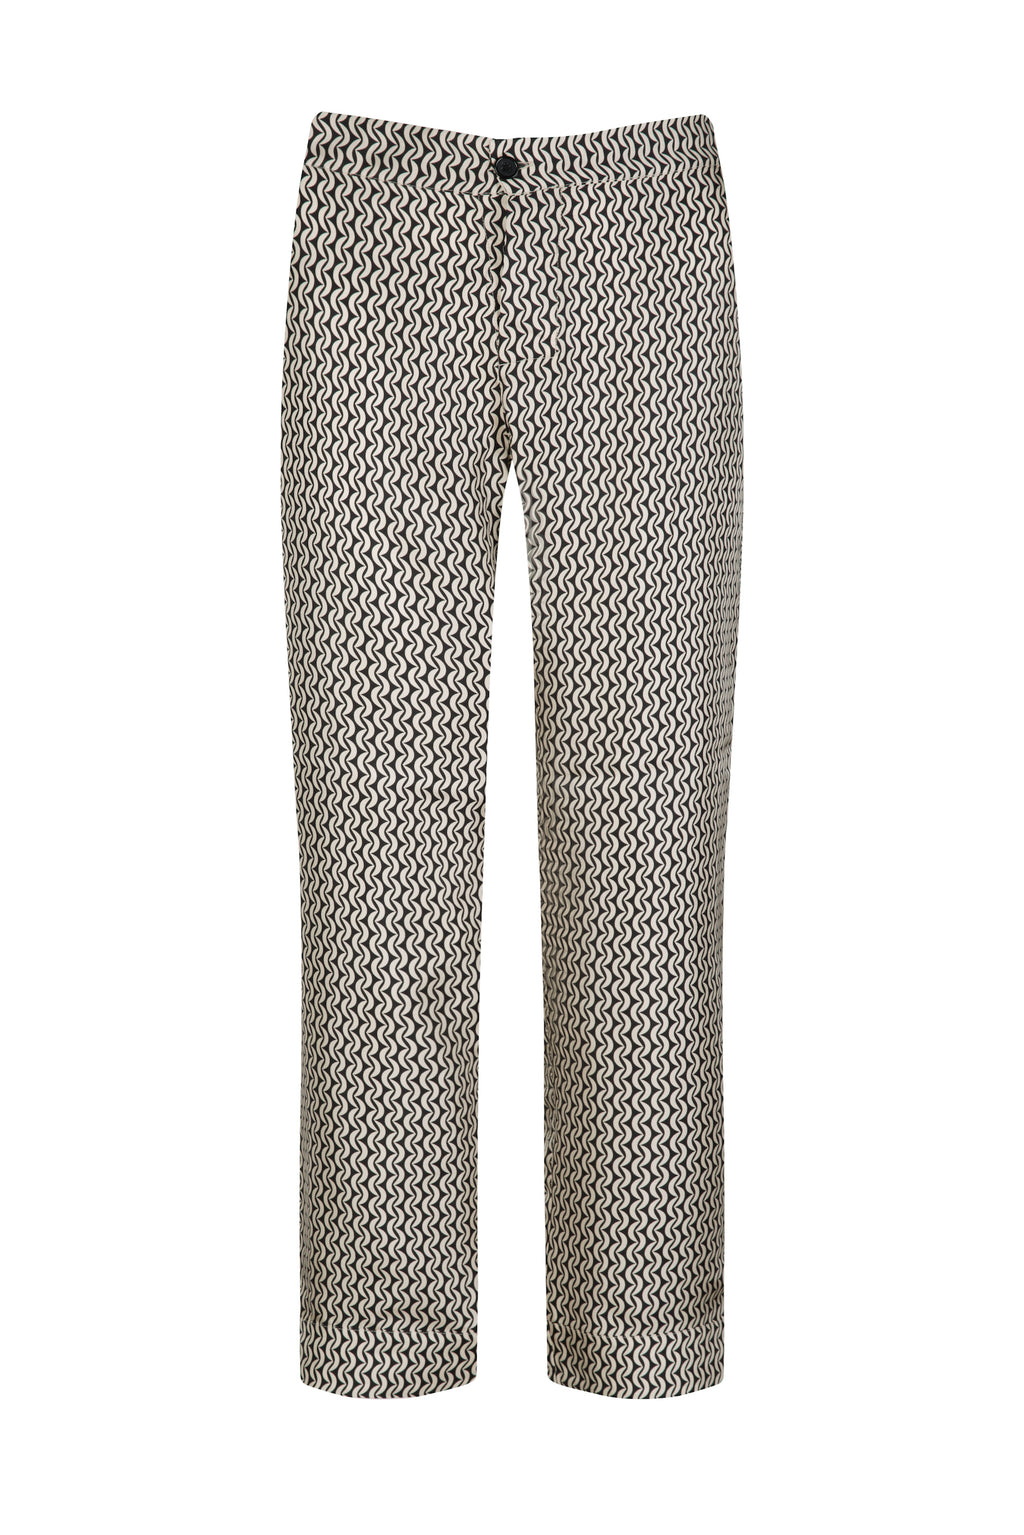 ASCENO ANTIBES CREAM CRESCENT SILK TWILL TROUSER